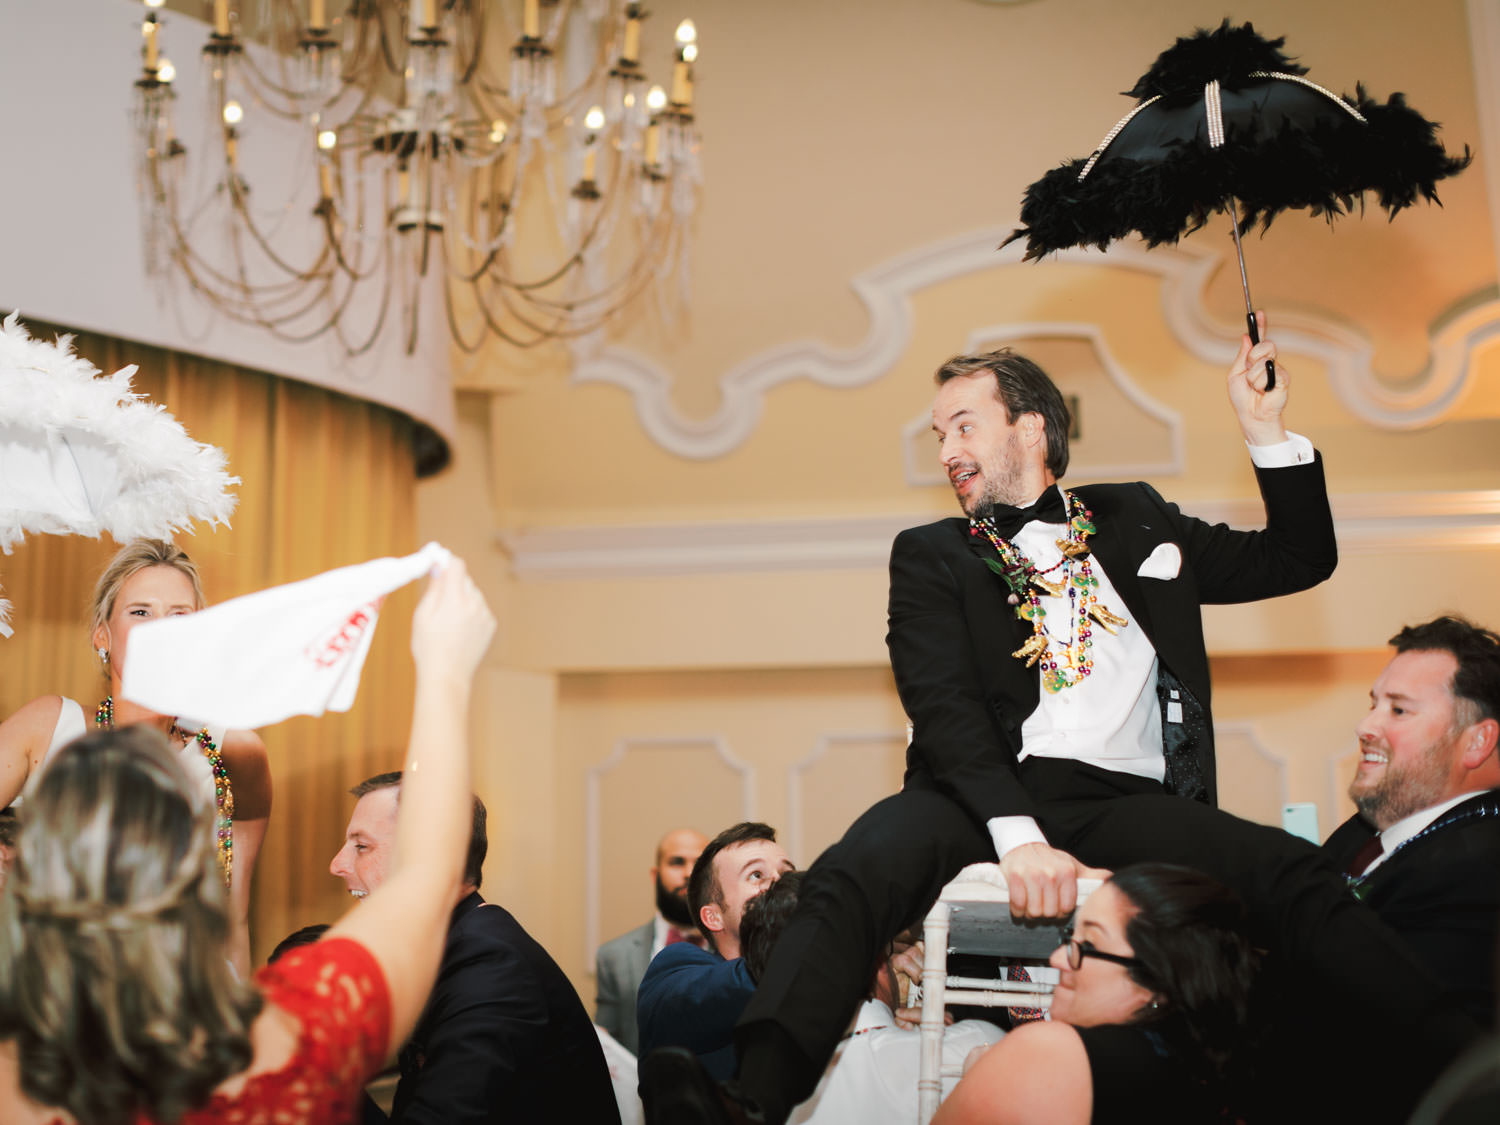 Groom held up on a chair during New Orleans second line with umbrellas and Mardi Gras beads. Hotel Del Wedding reception by Cavin Elizabeth.